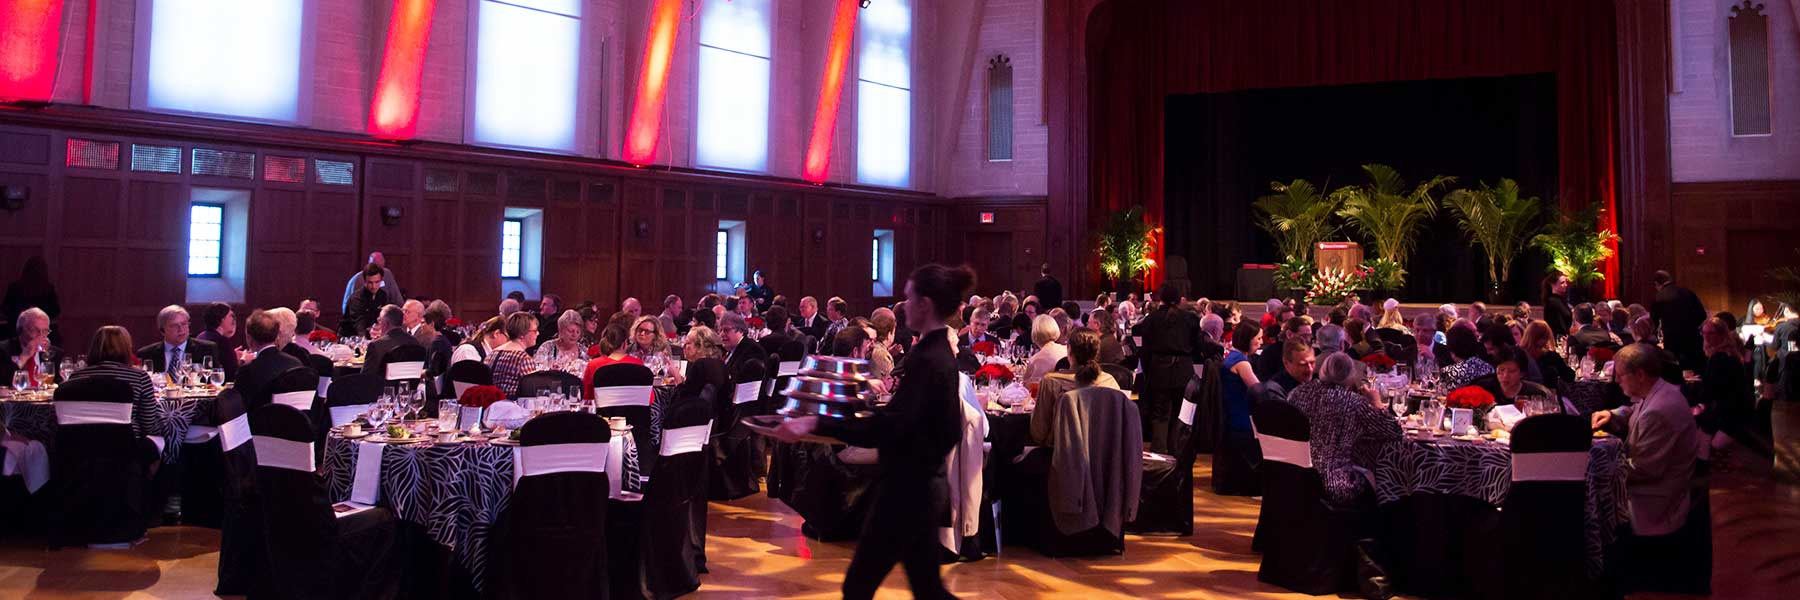 Guests attend a formal event at Alumni Hall in the Indiana Memorial Union.